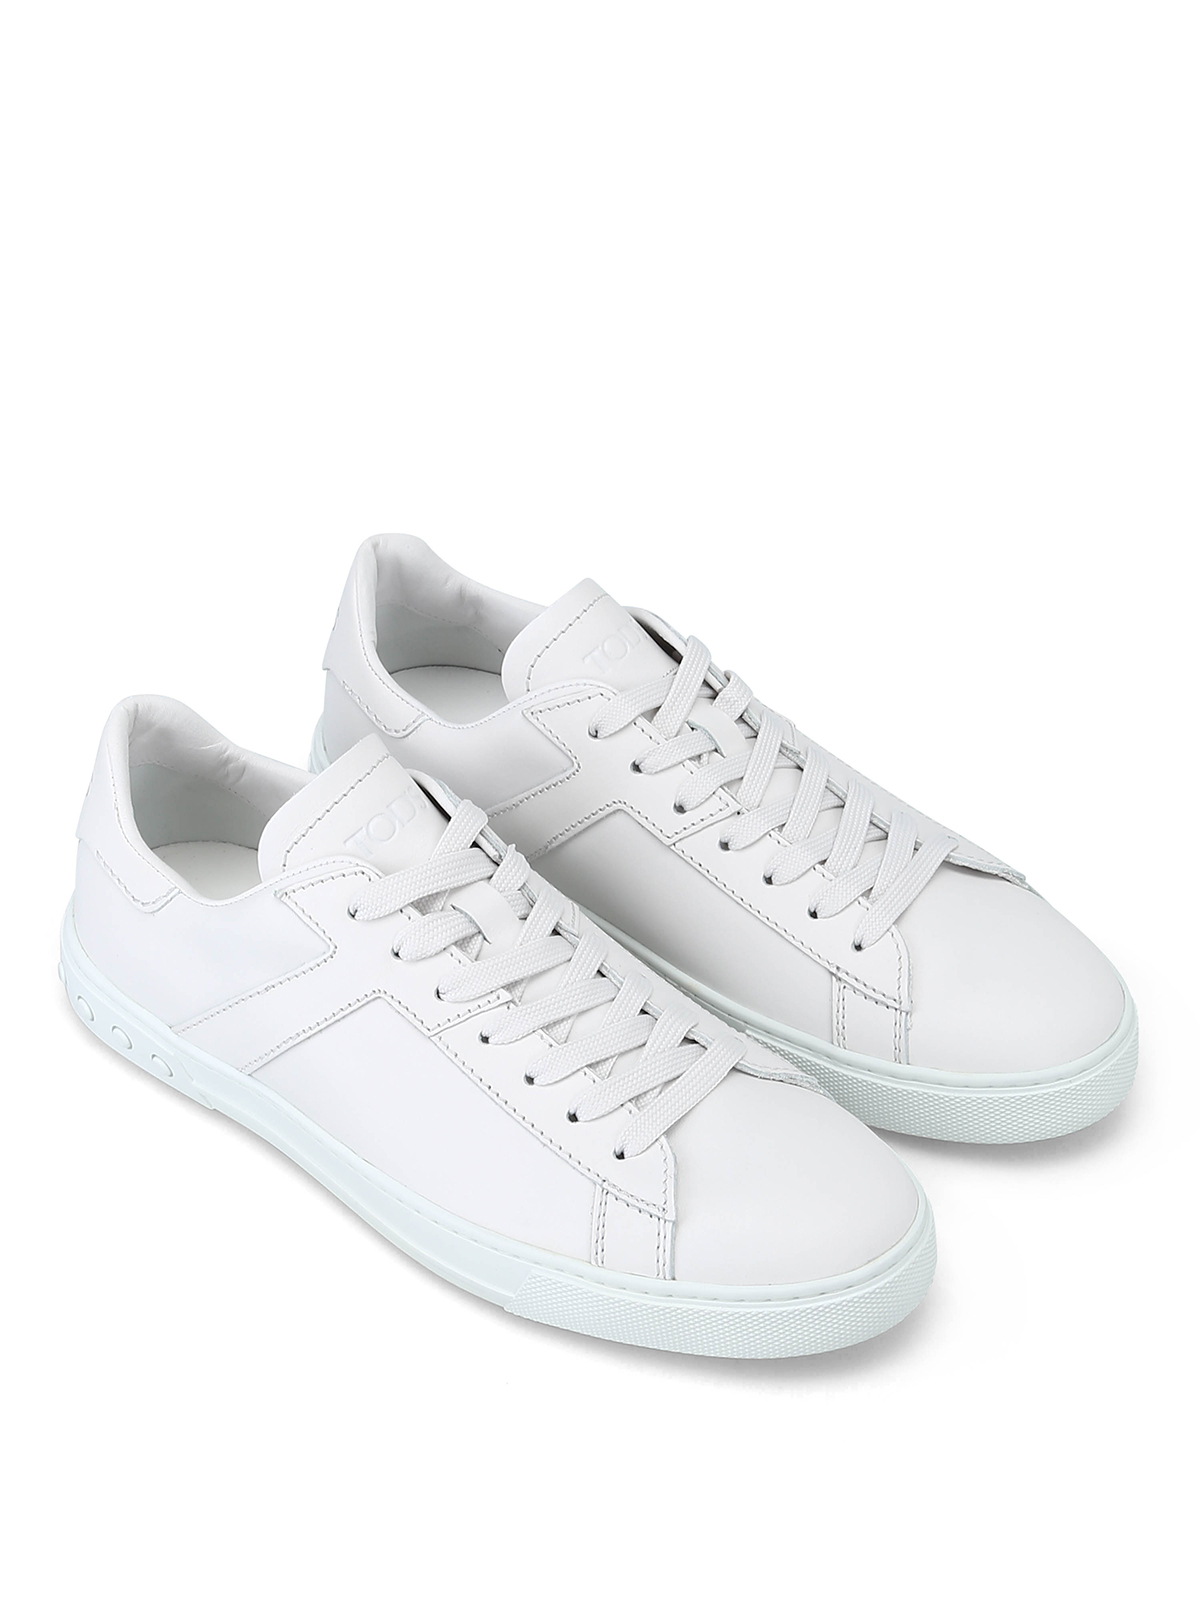 Tod'S - Side T white leather sneakers